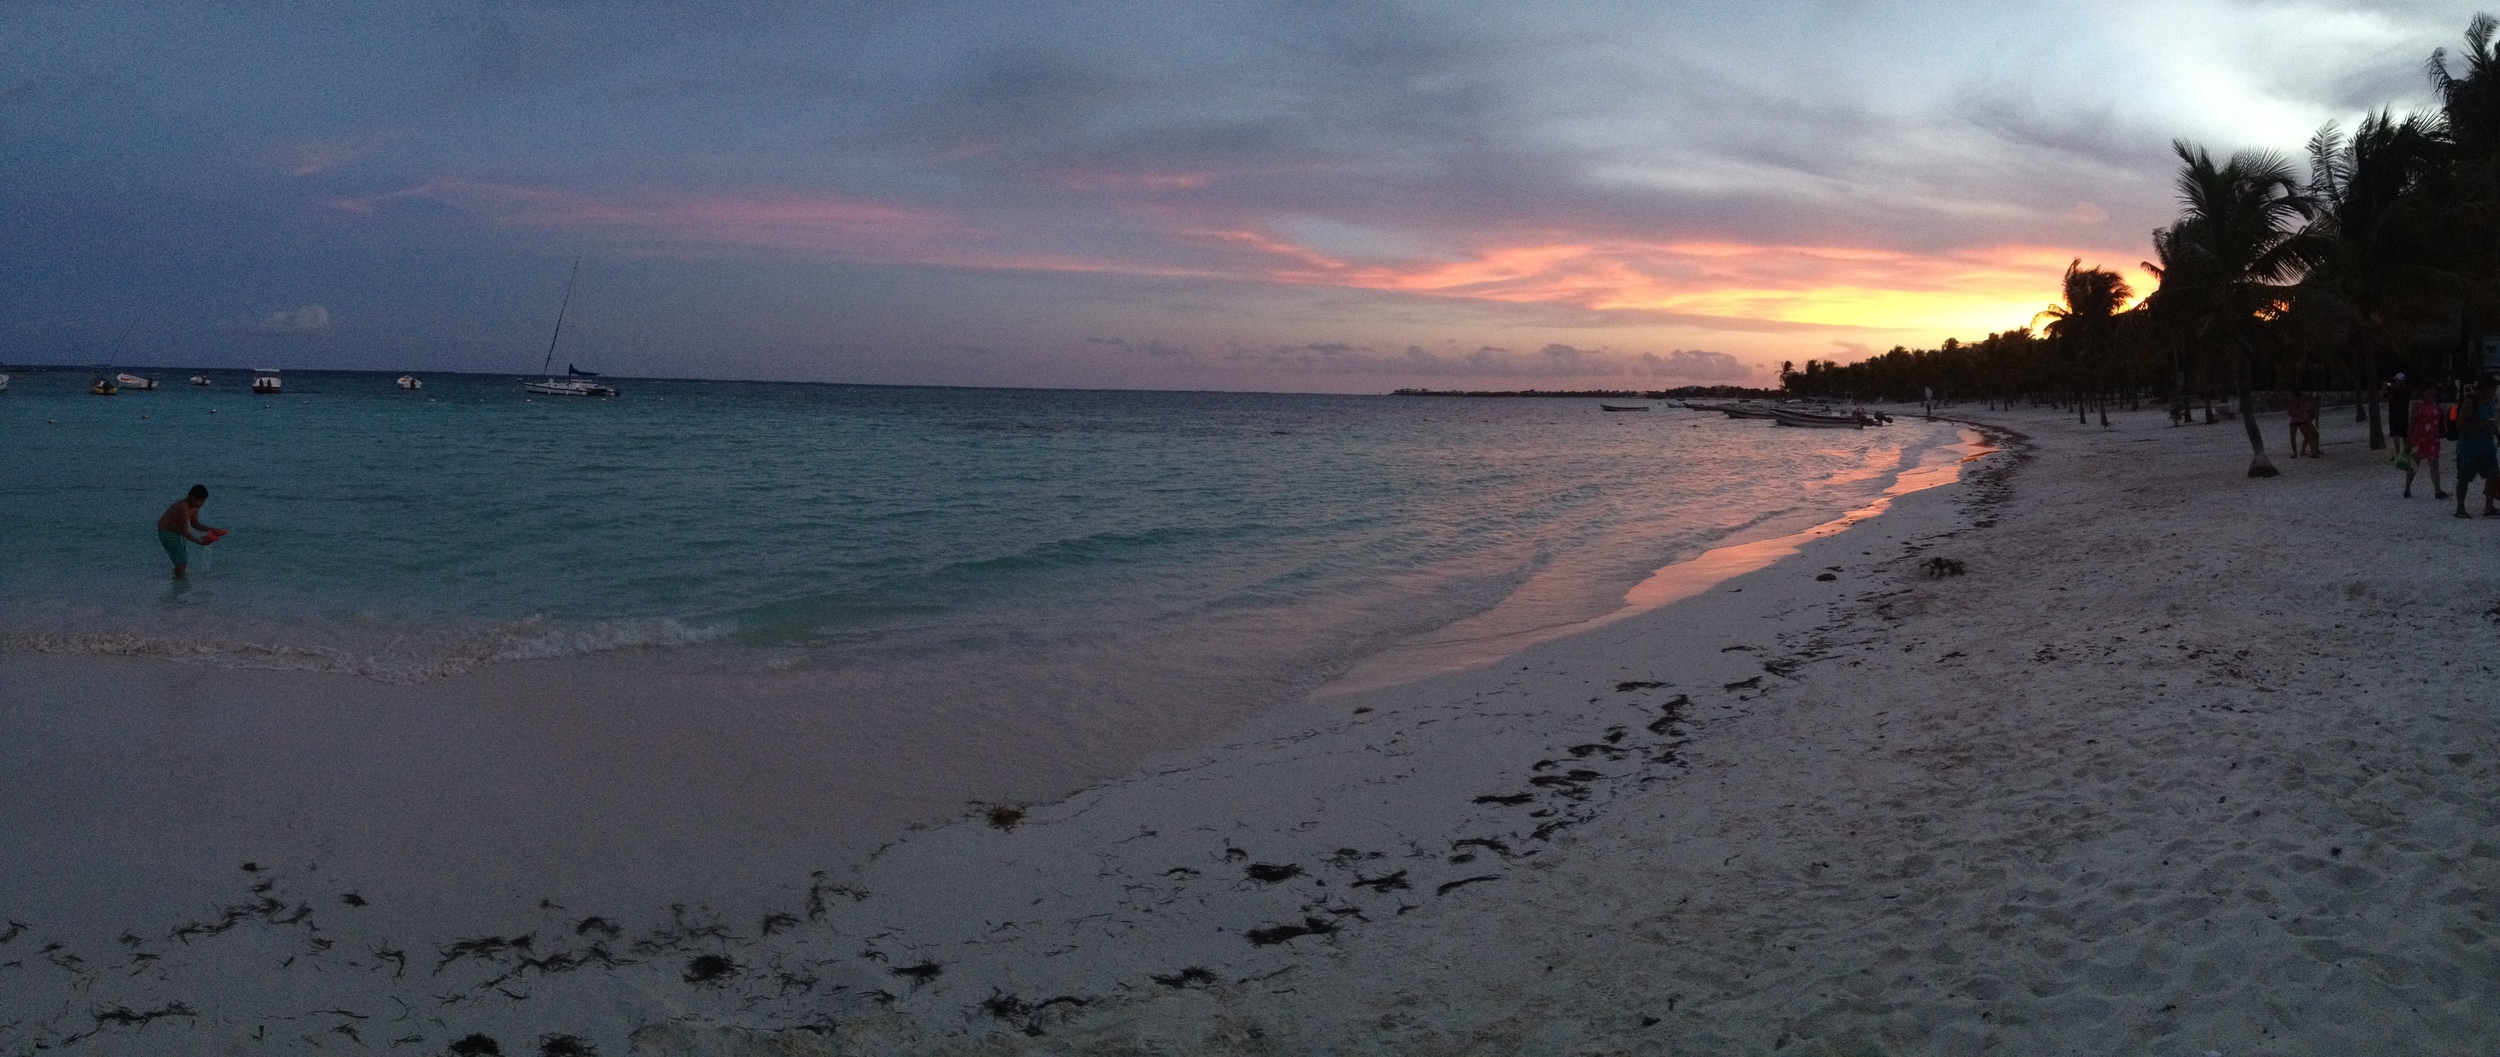 Sunset in Akumal on September 17, 2014. Day one of my journey!